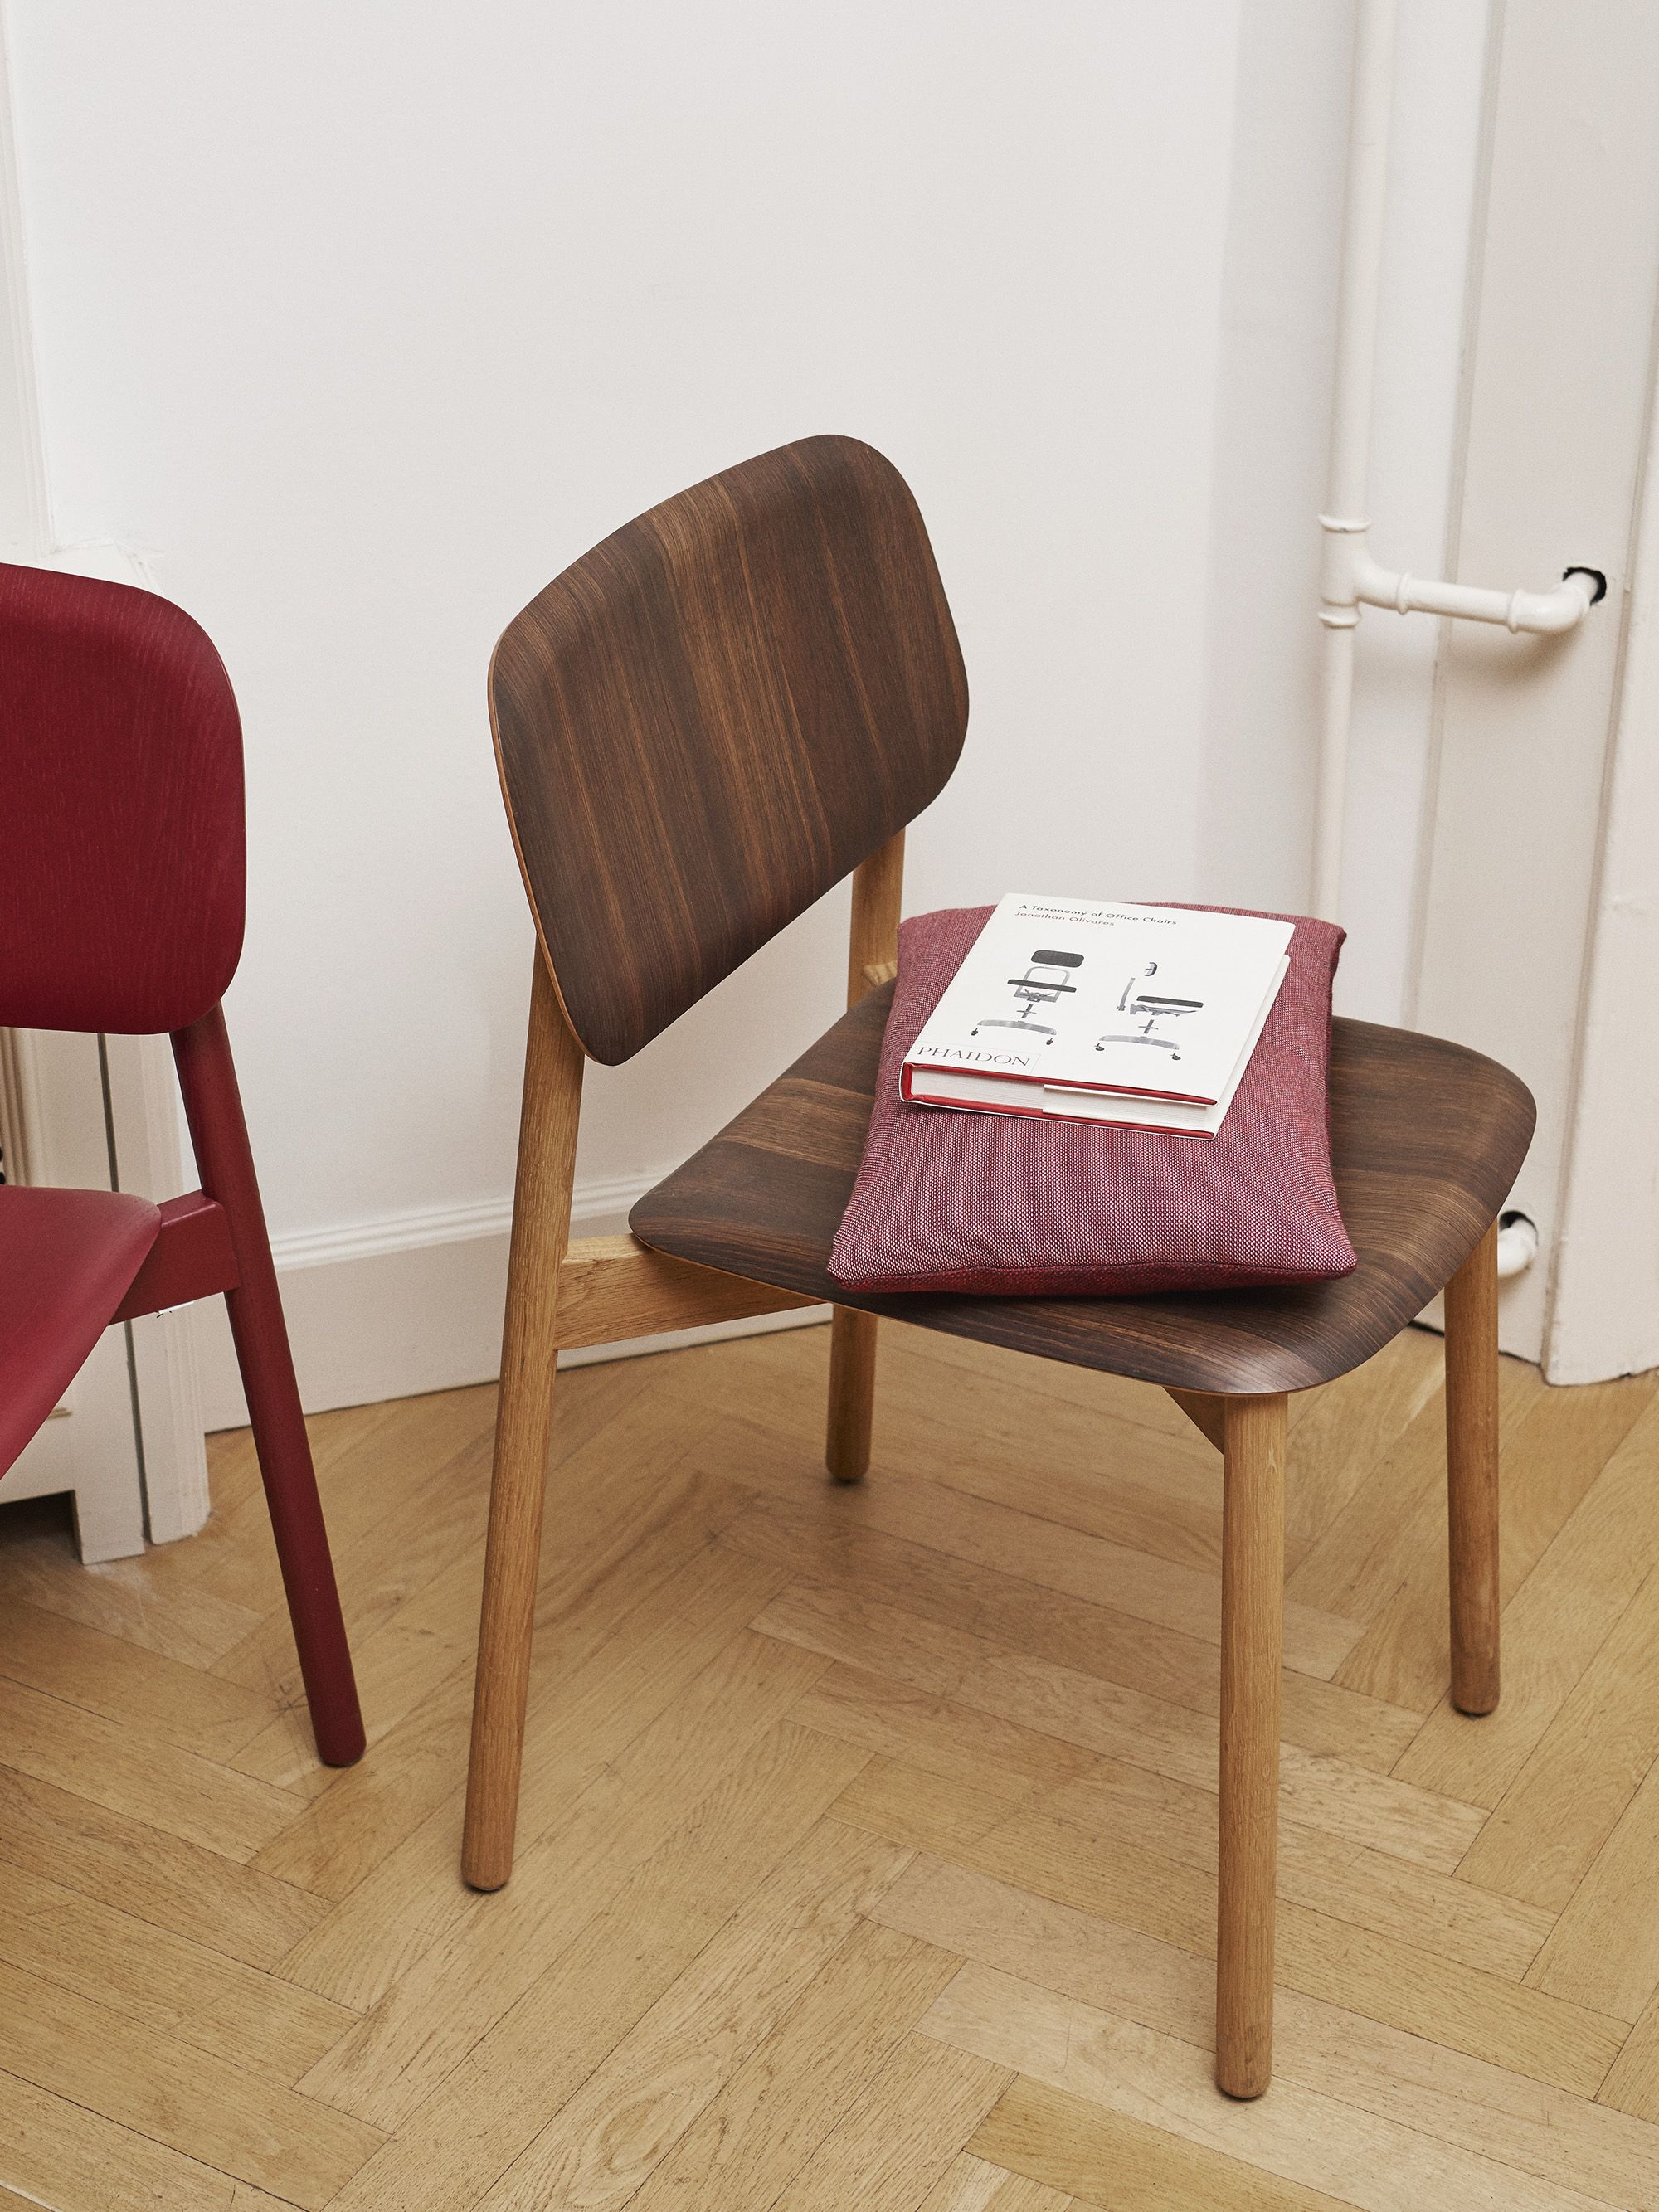 Soft Edge Chair And Eclectic Cushion. Office FurnitureDining ...